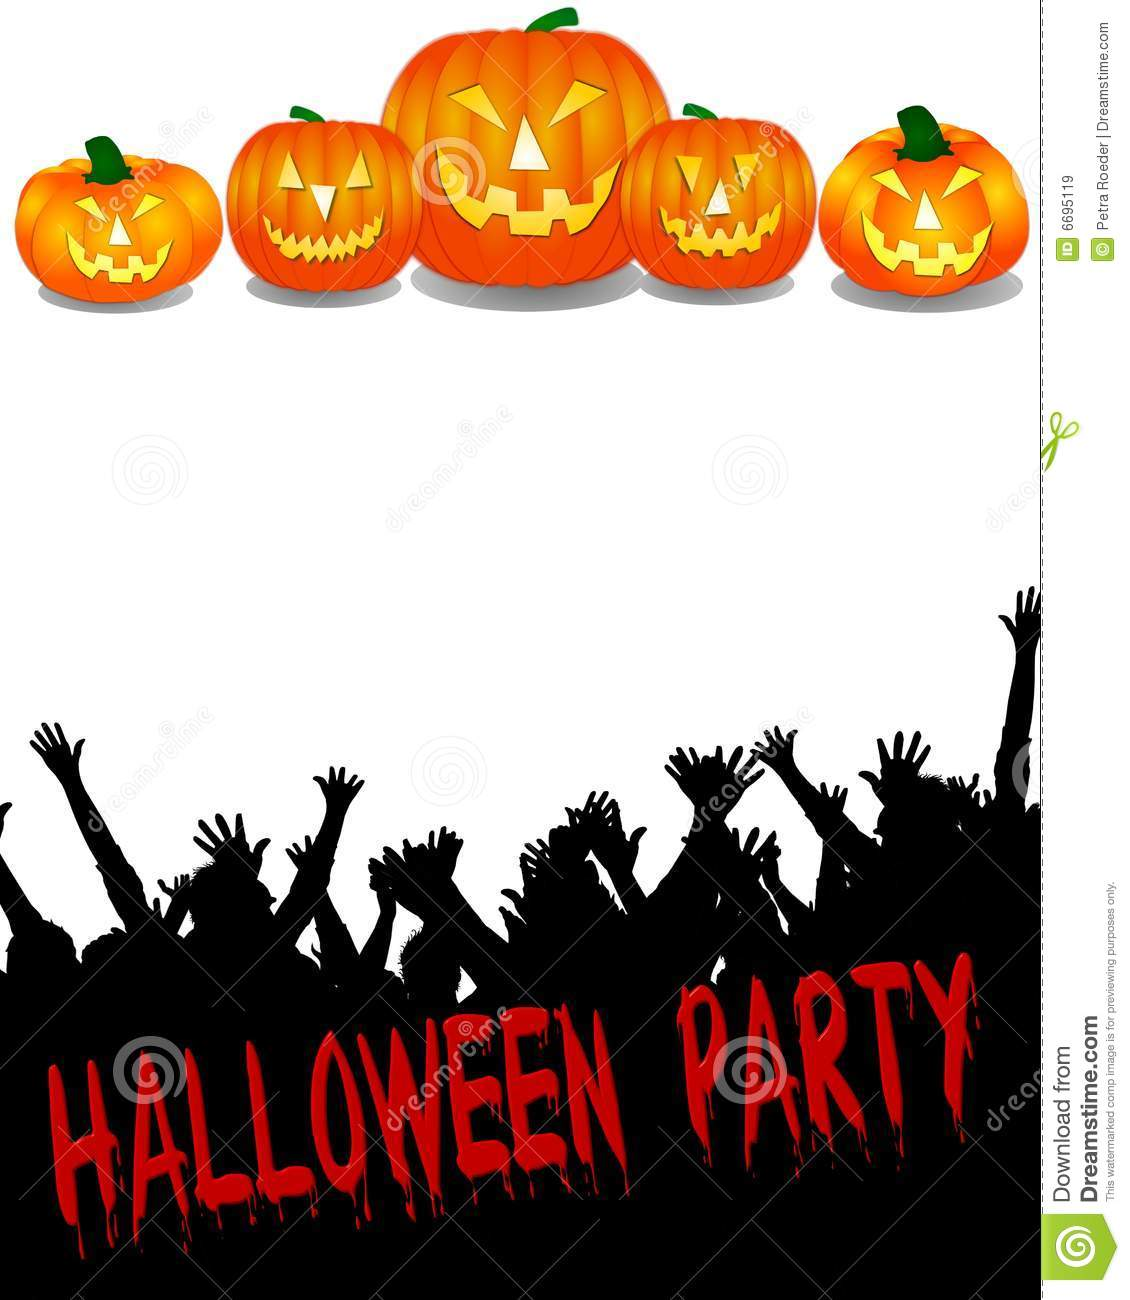 Halloween Party Banner Royalty Free Stock Images - Image: 6695119